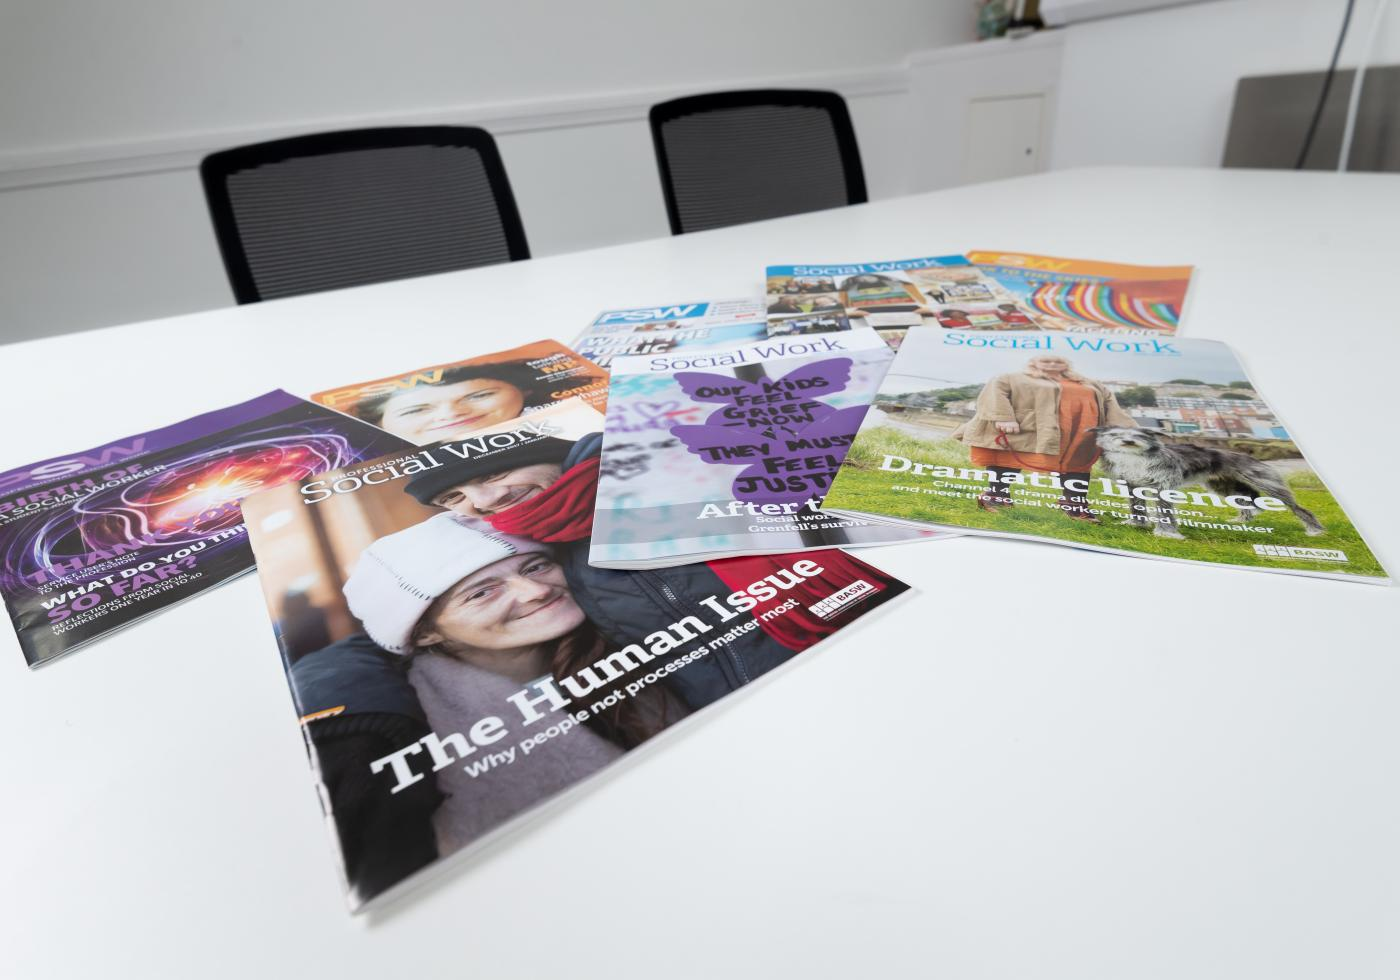 Professional Social Work Magazine on a table